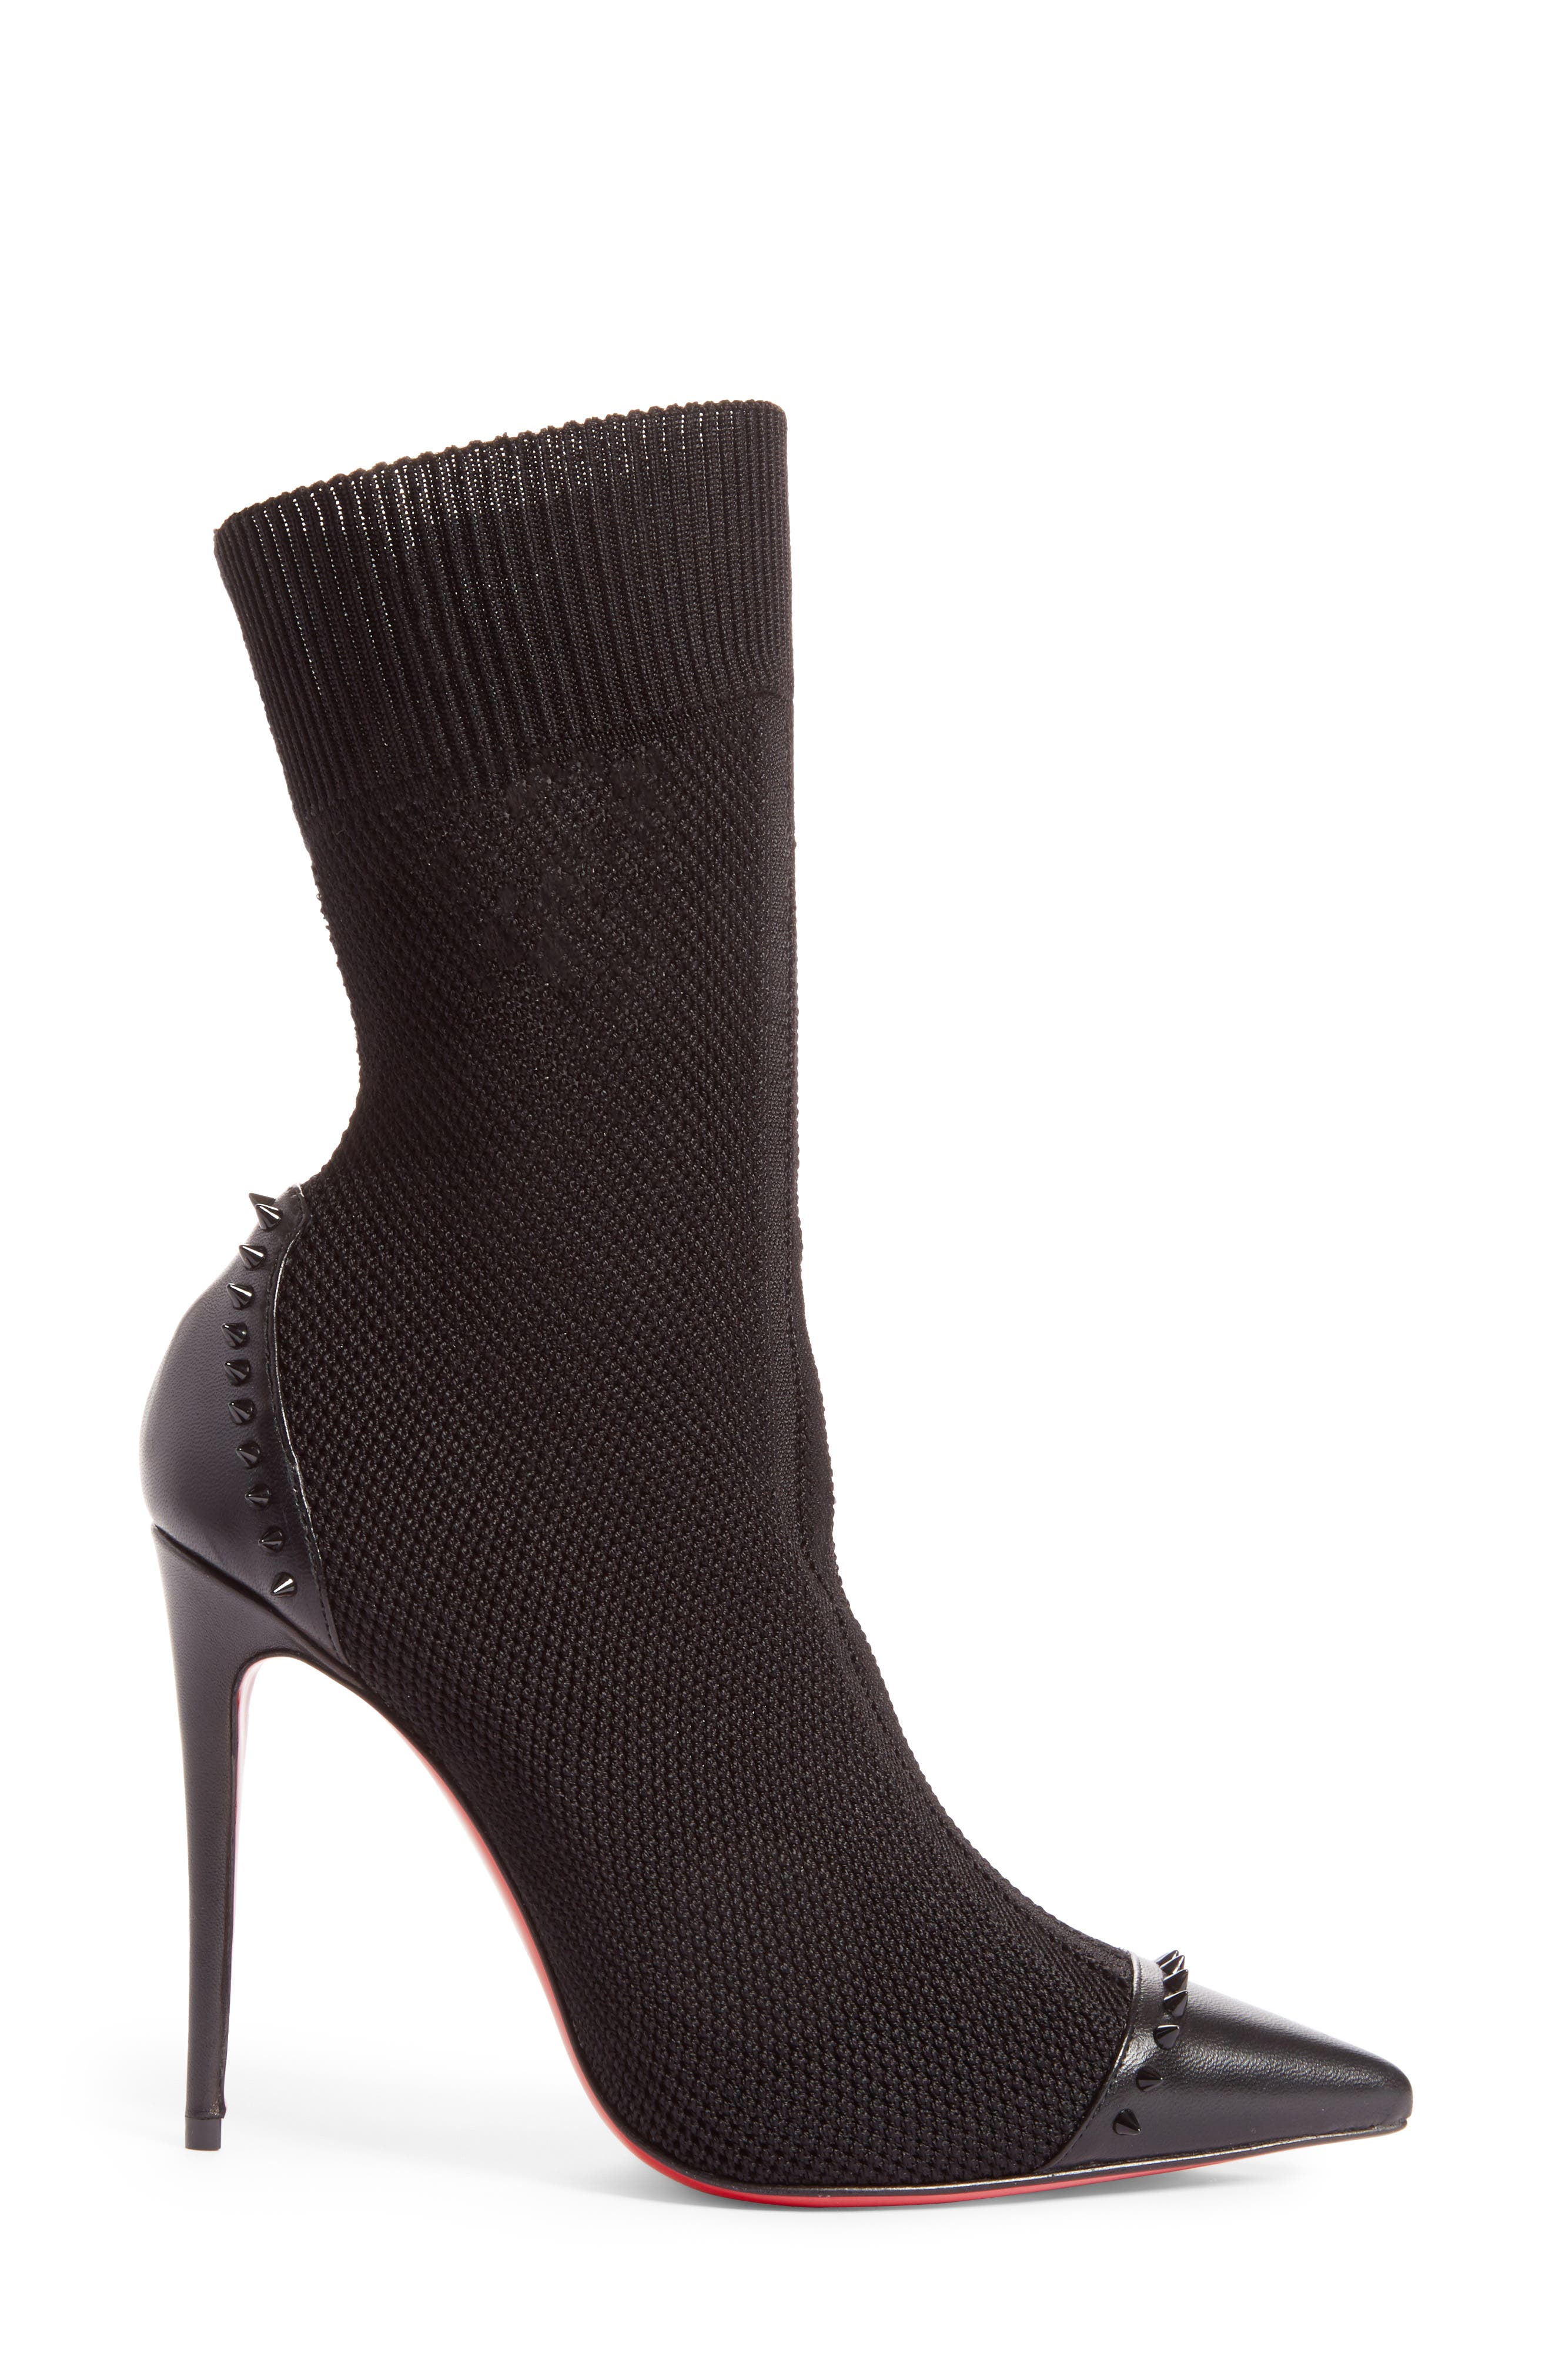 Dovi Dova Spiked Pointy Toe Bootie,                             Alternate thumbnail 3, color,                             001